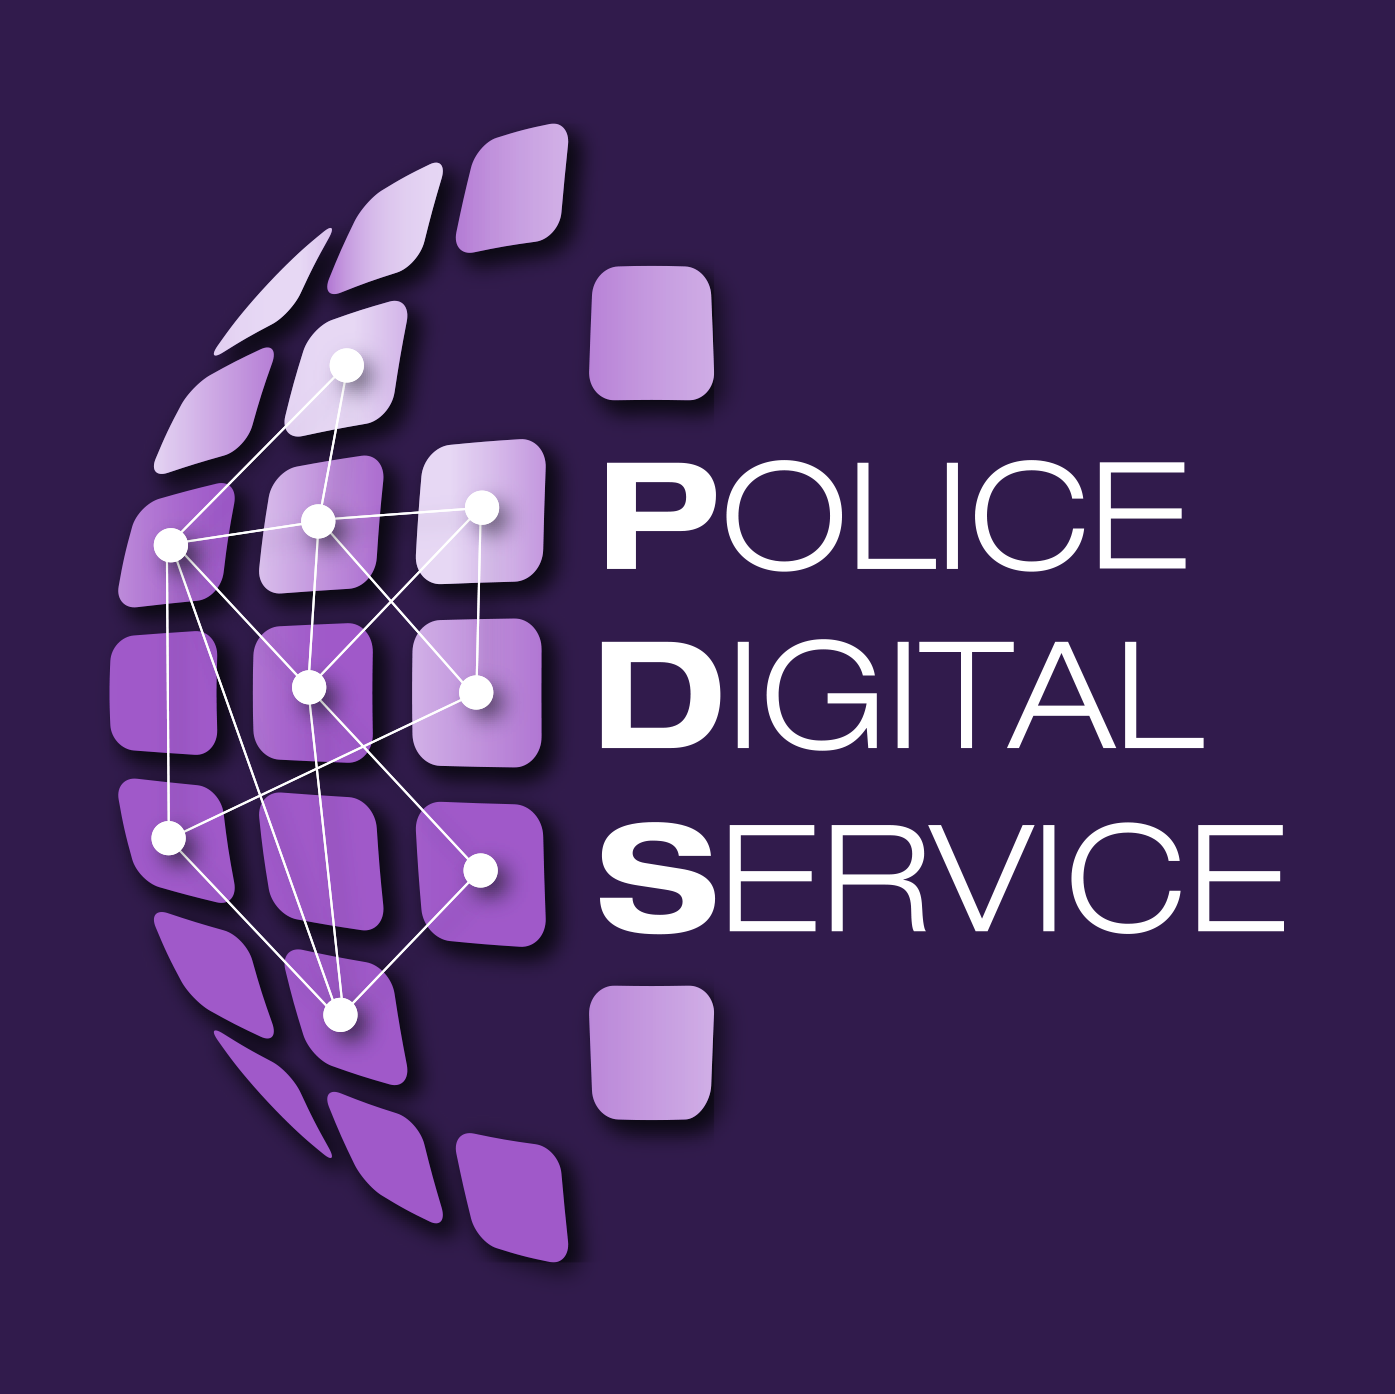 New Police Digital Service Logo in purple